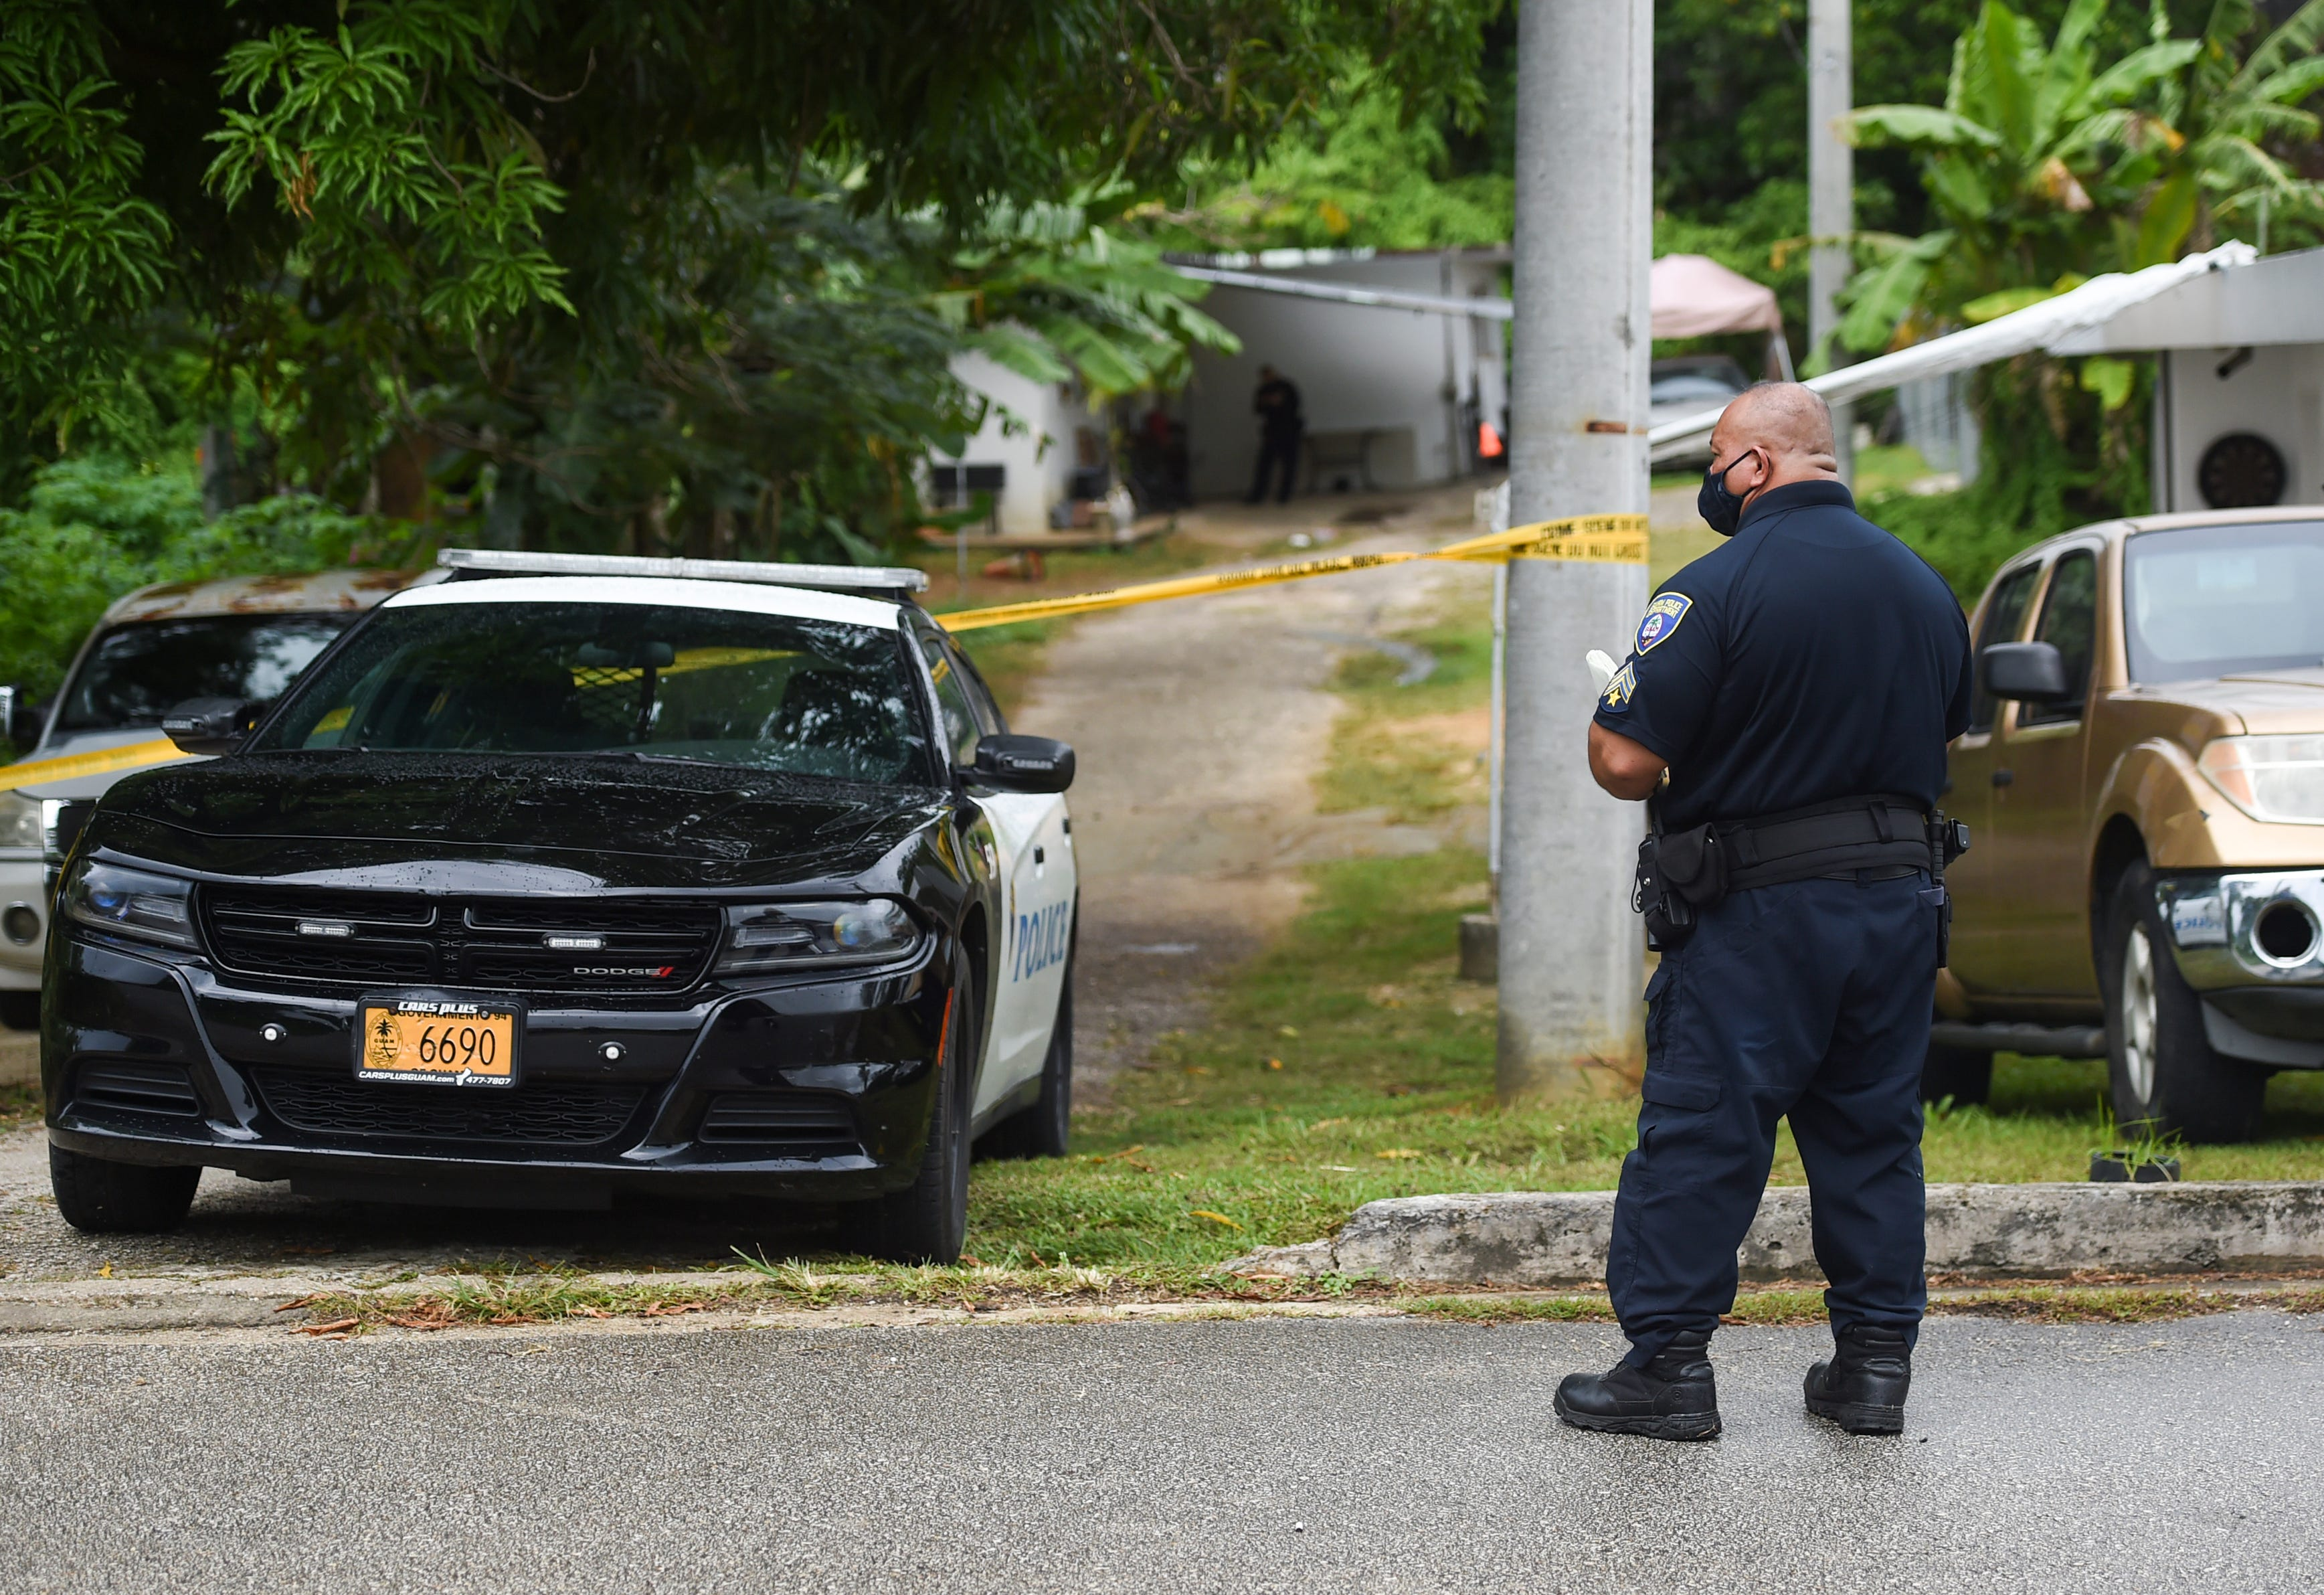 Agana Heights Death A Homicide Prosecutors Say Shooter Defended Home